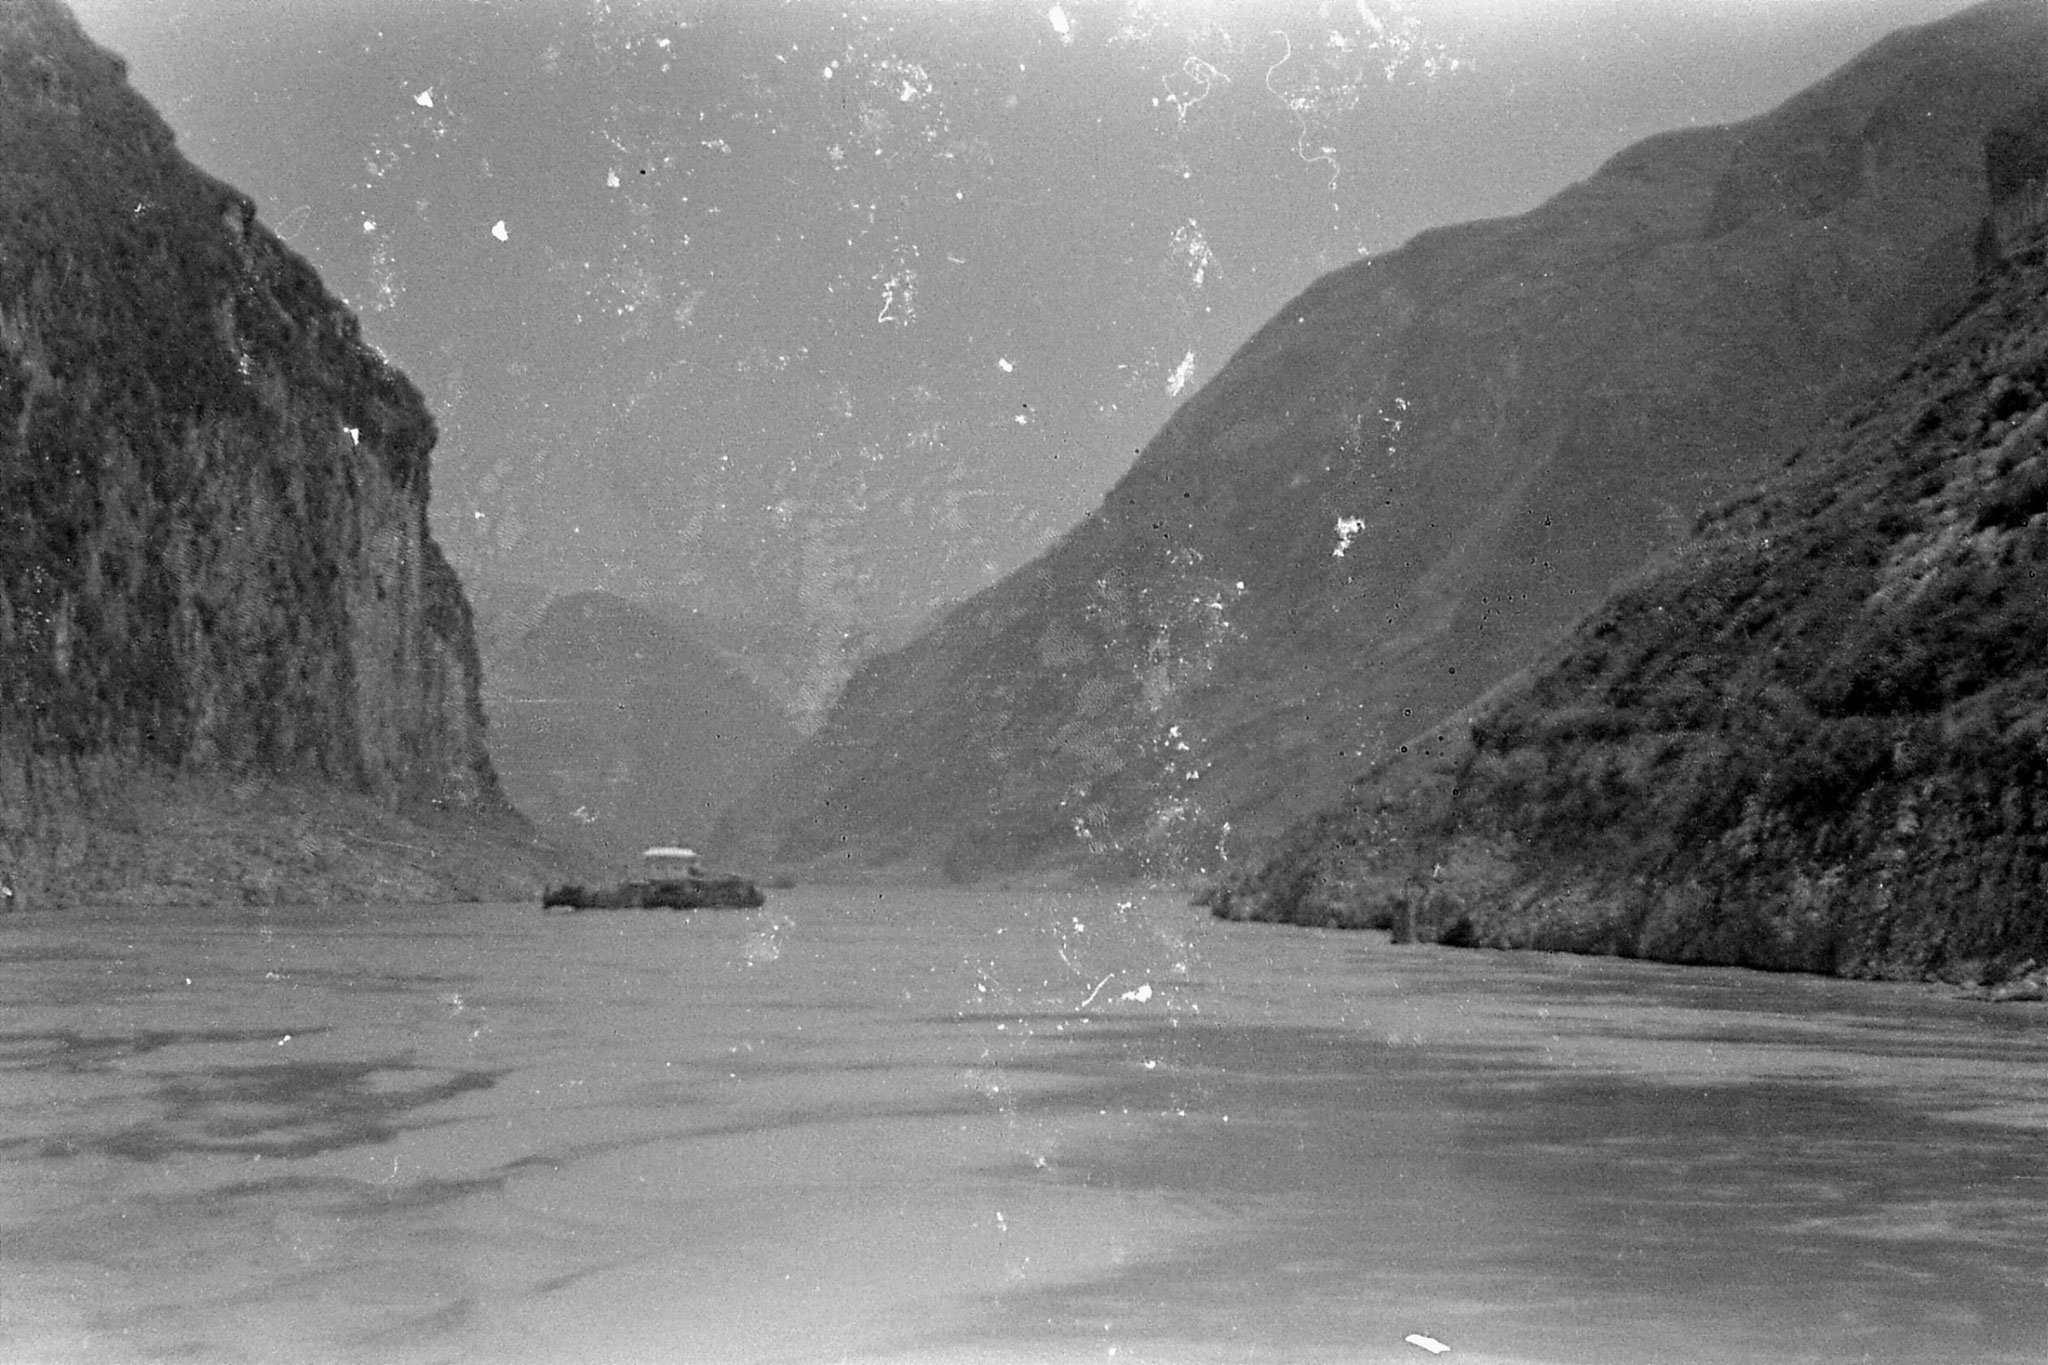 10/8/1989: 8: Three Gorges